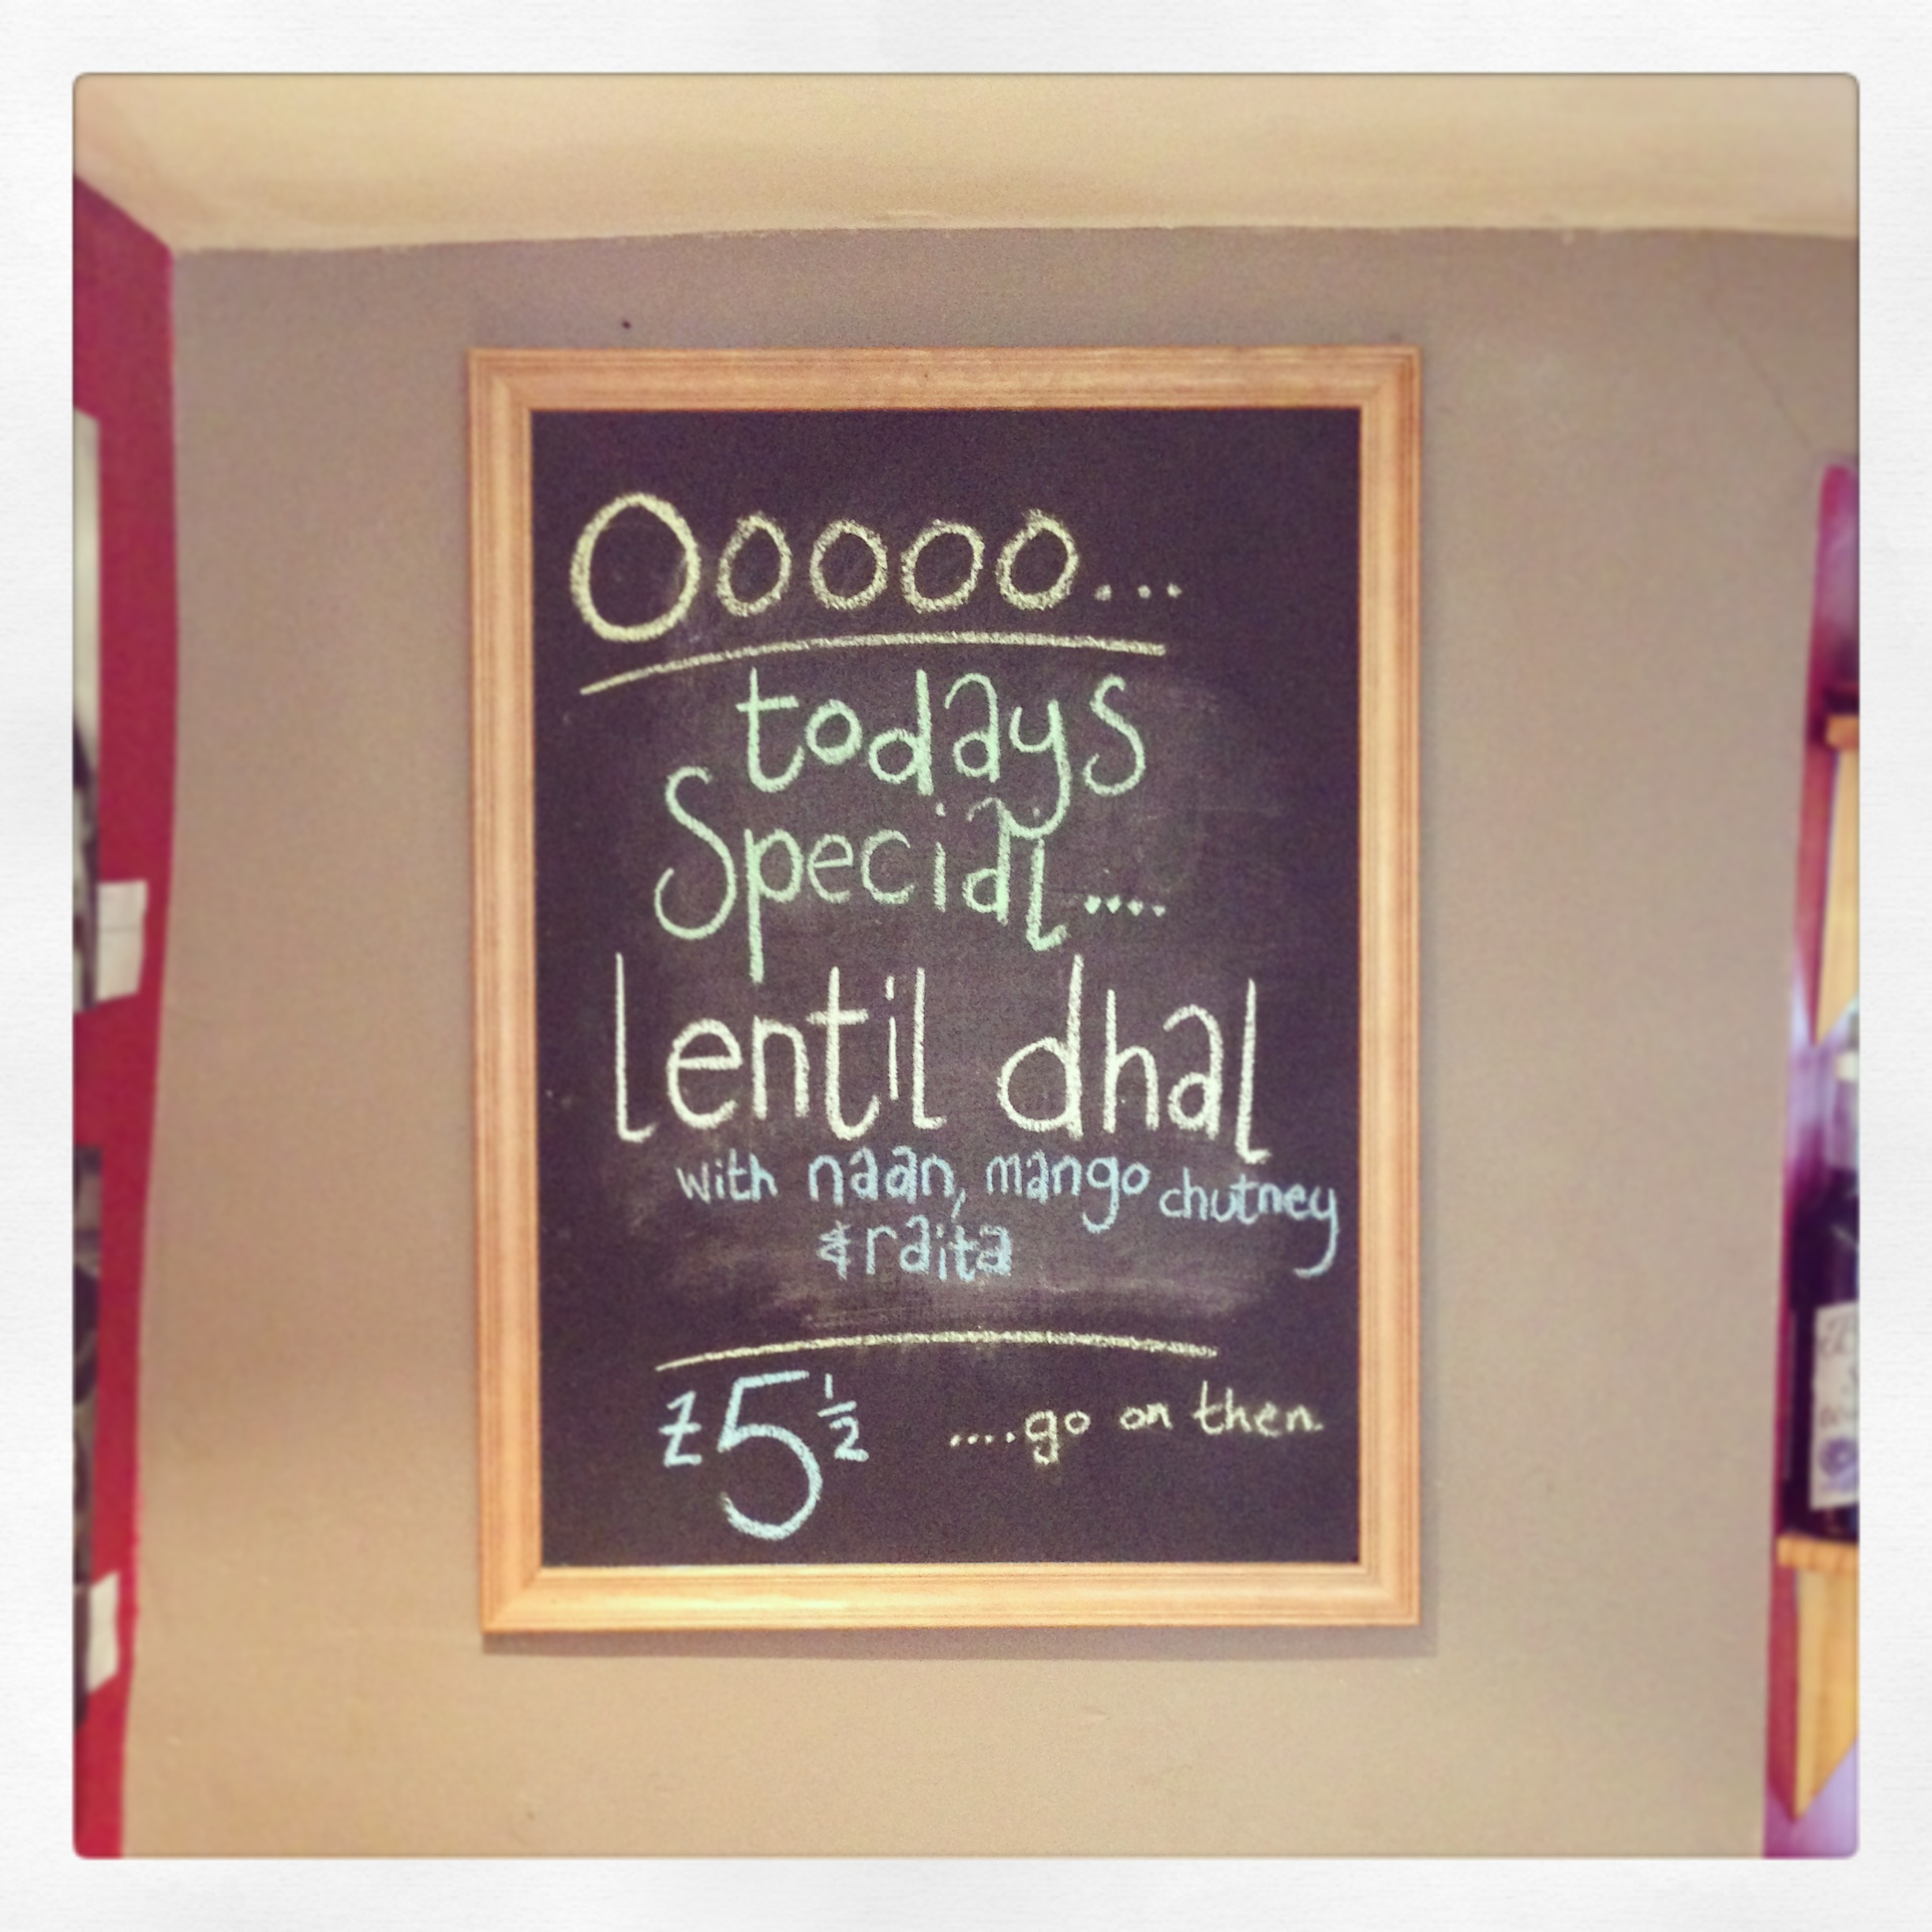 The dhal returns next month...